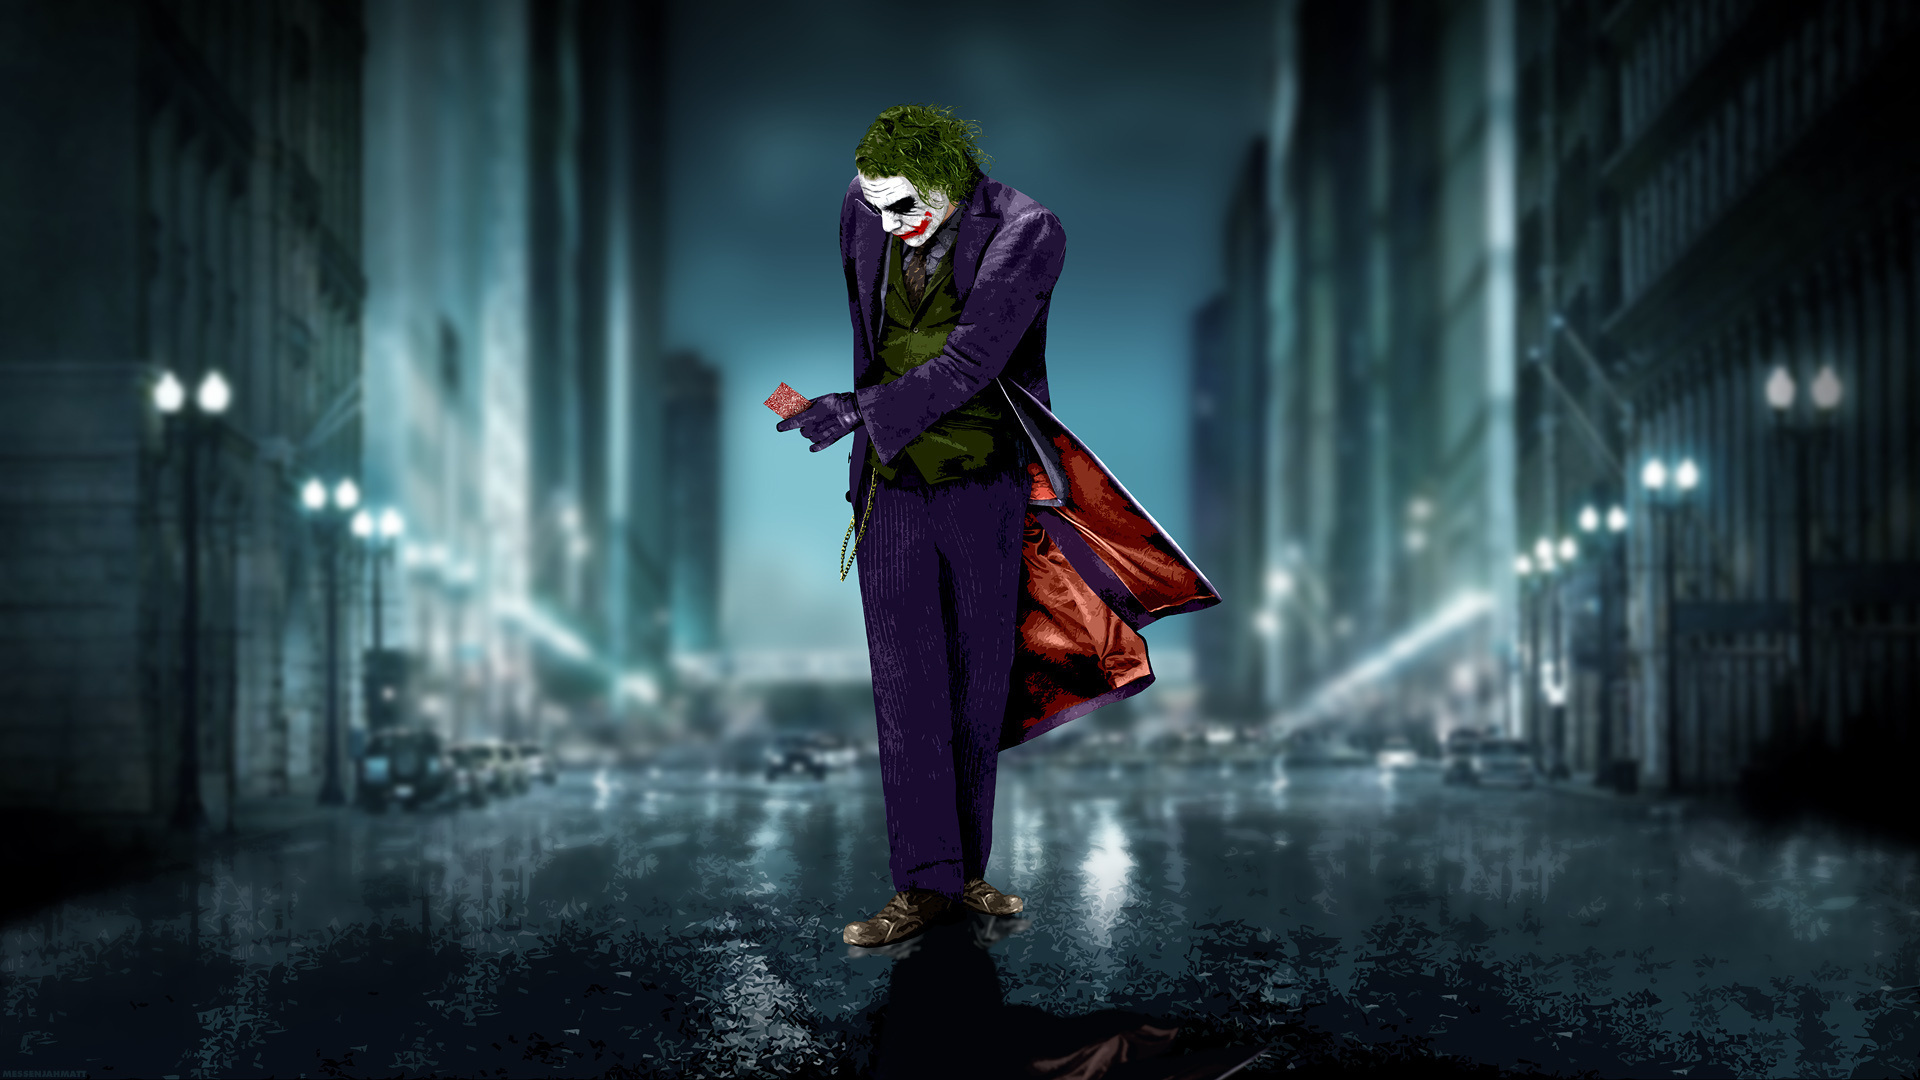 Pics Photos   Batman Poster The Joker Wallpaper Hq 1920x1080